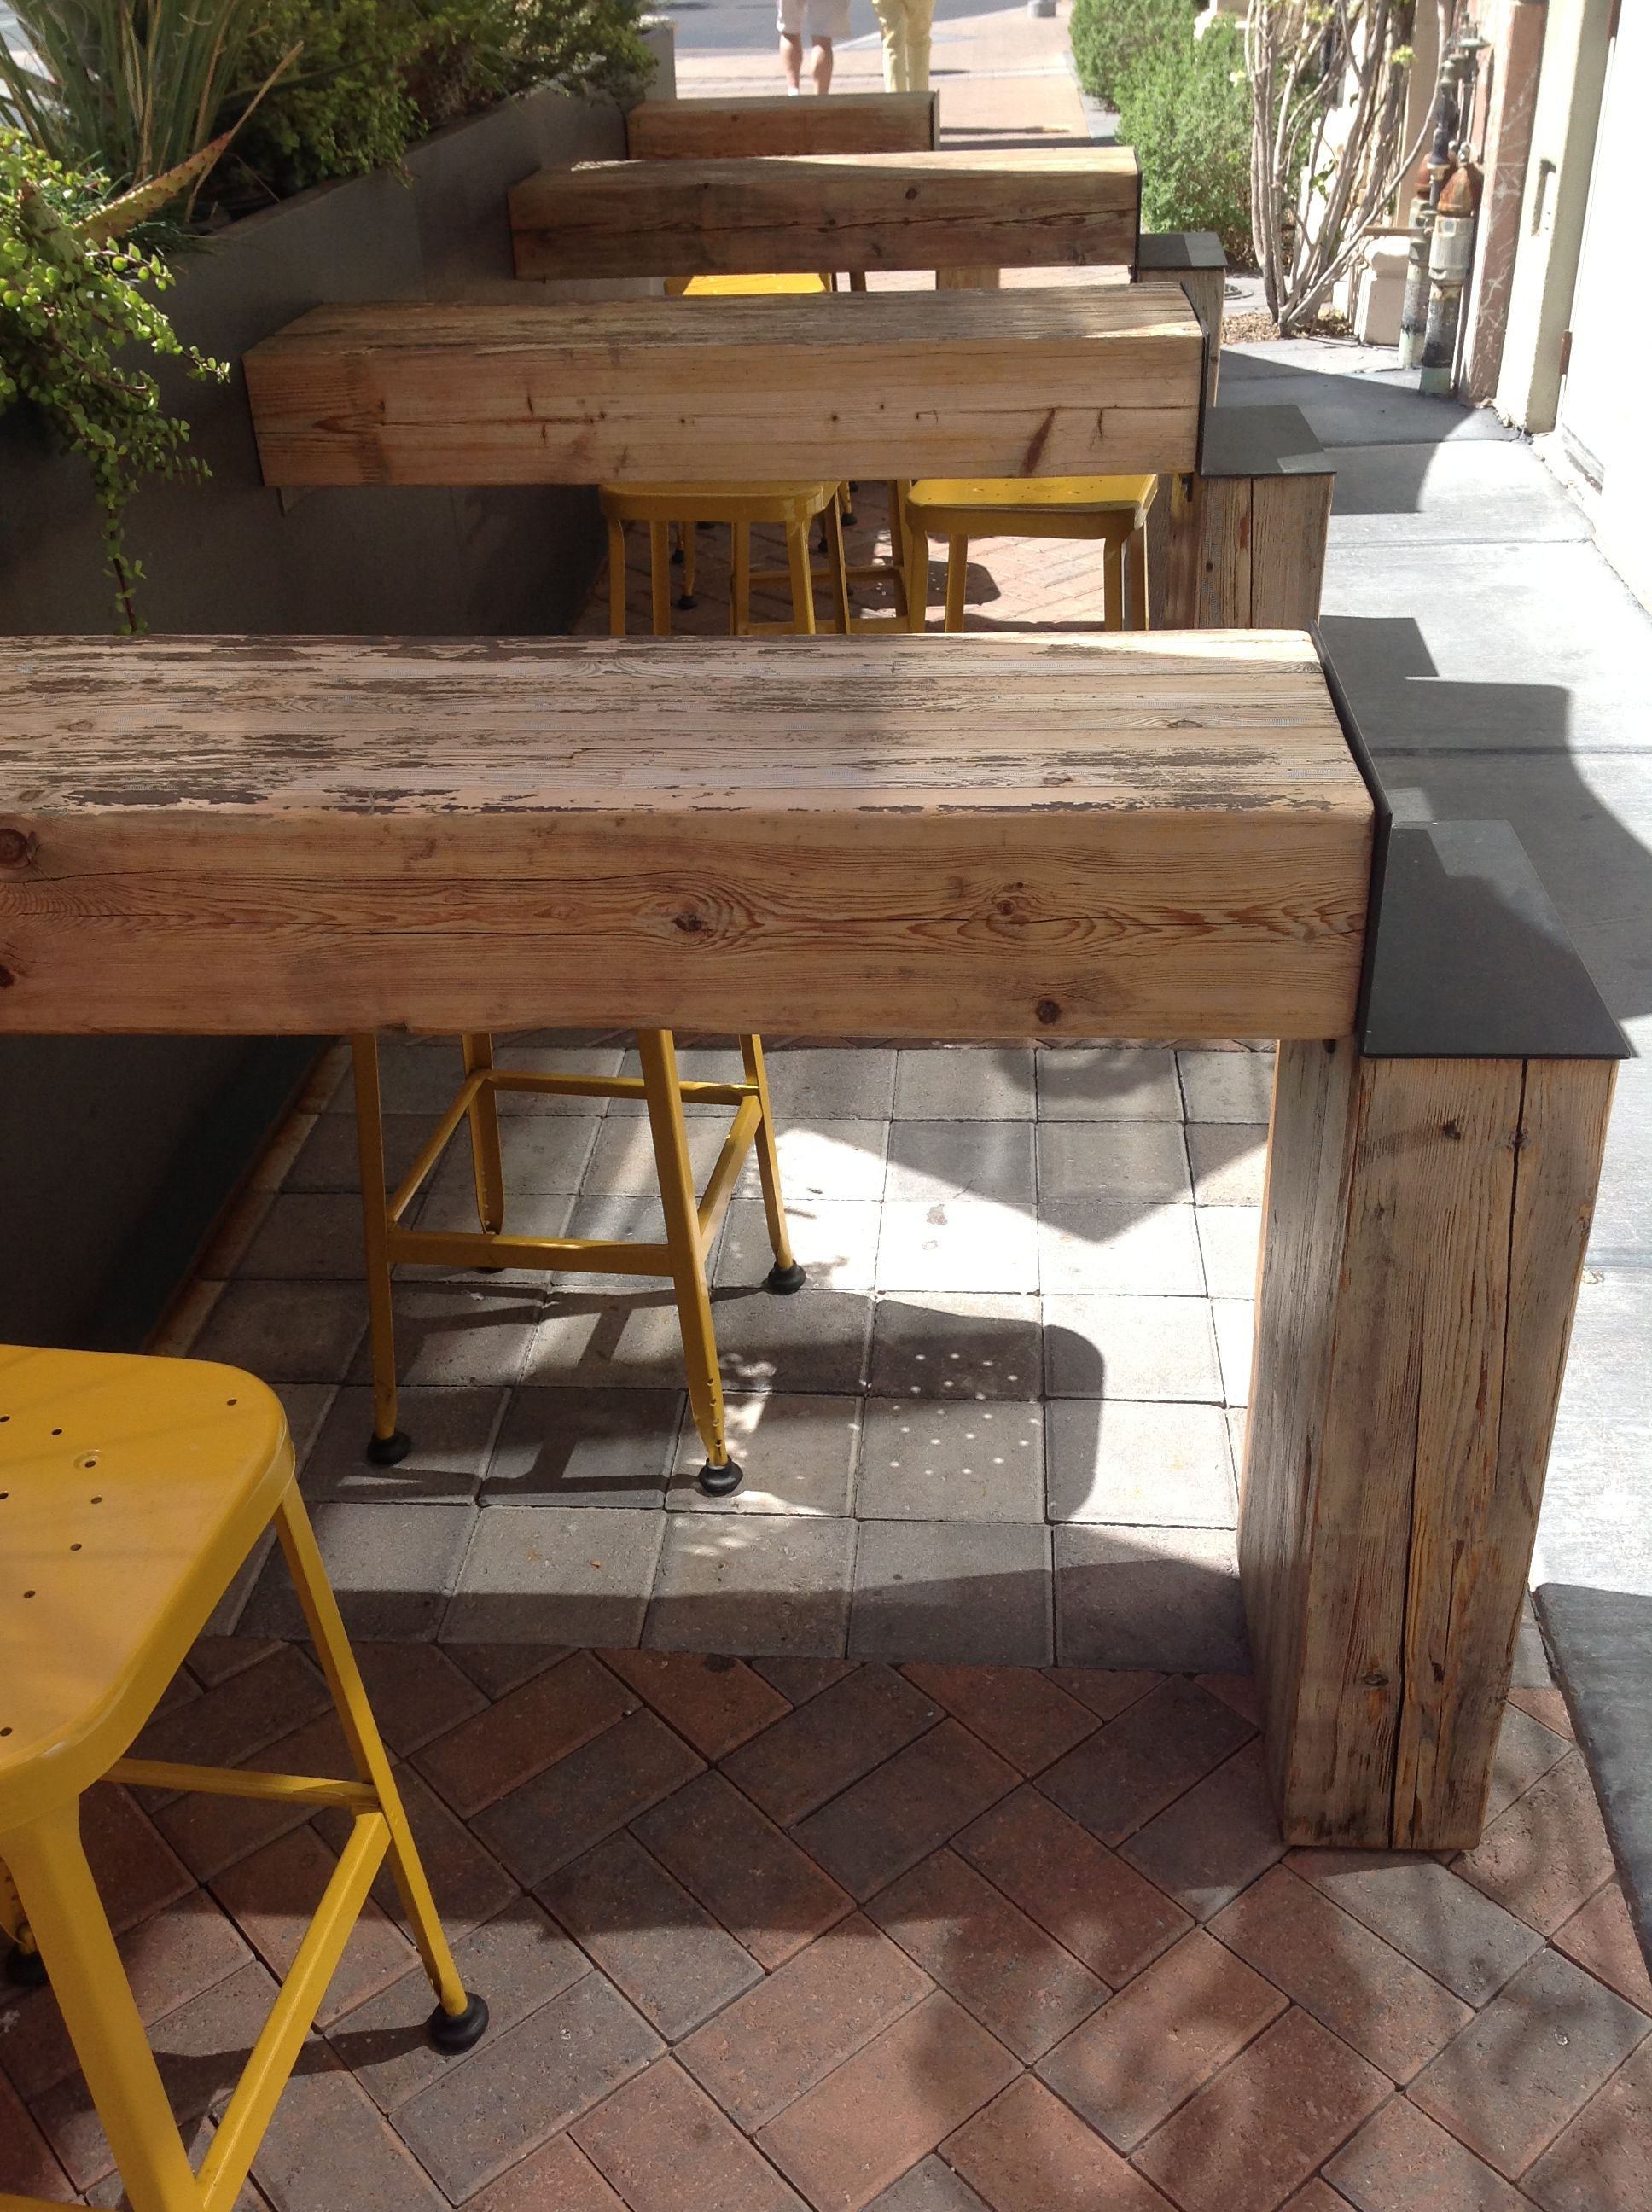 For beer garden I love the repurposed use of the wood blocks Cute